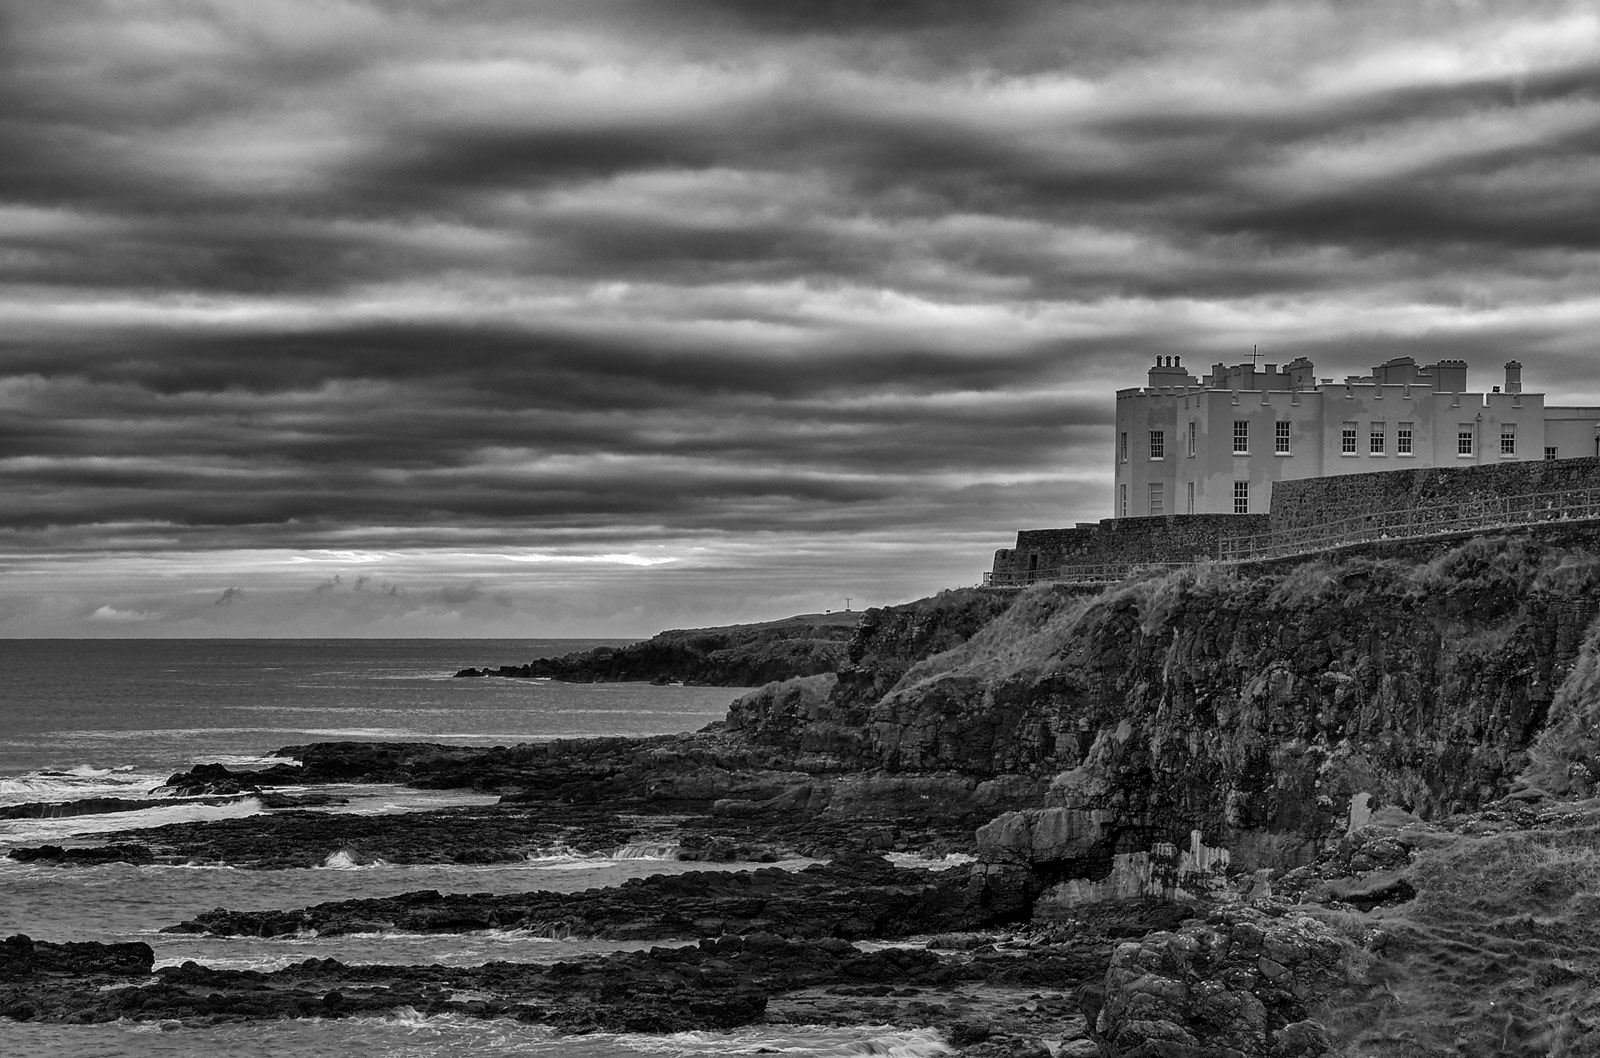 Portstewart - The Old Convent - B&W - Geoff McGrath Photography